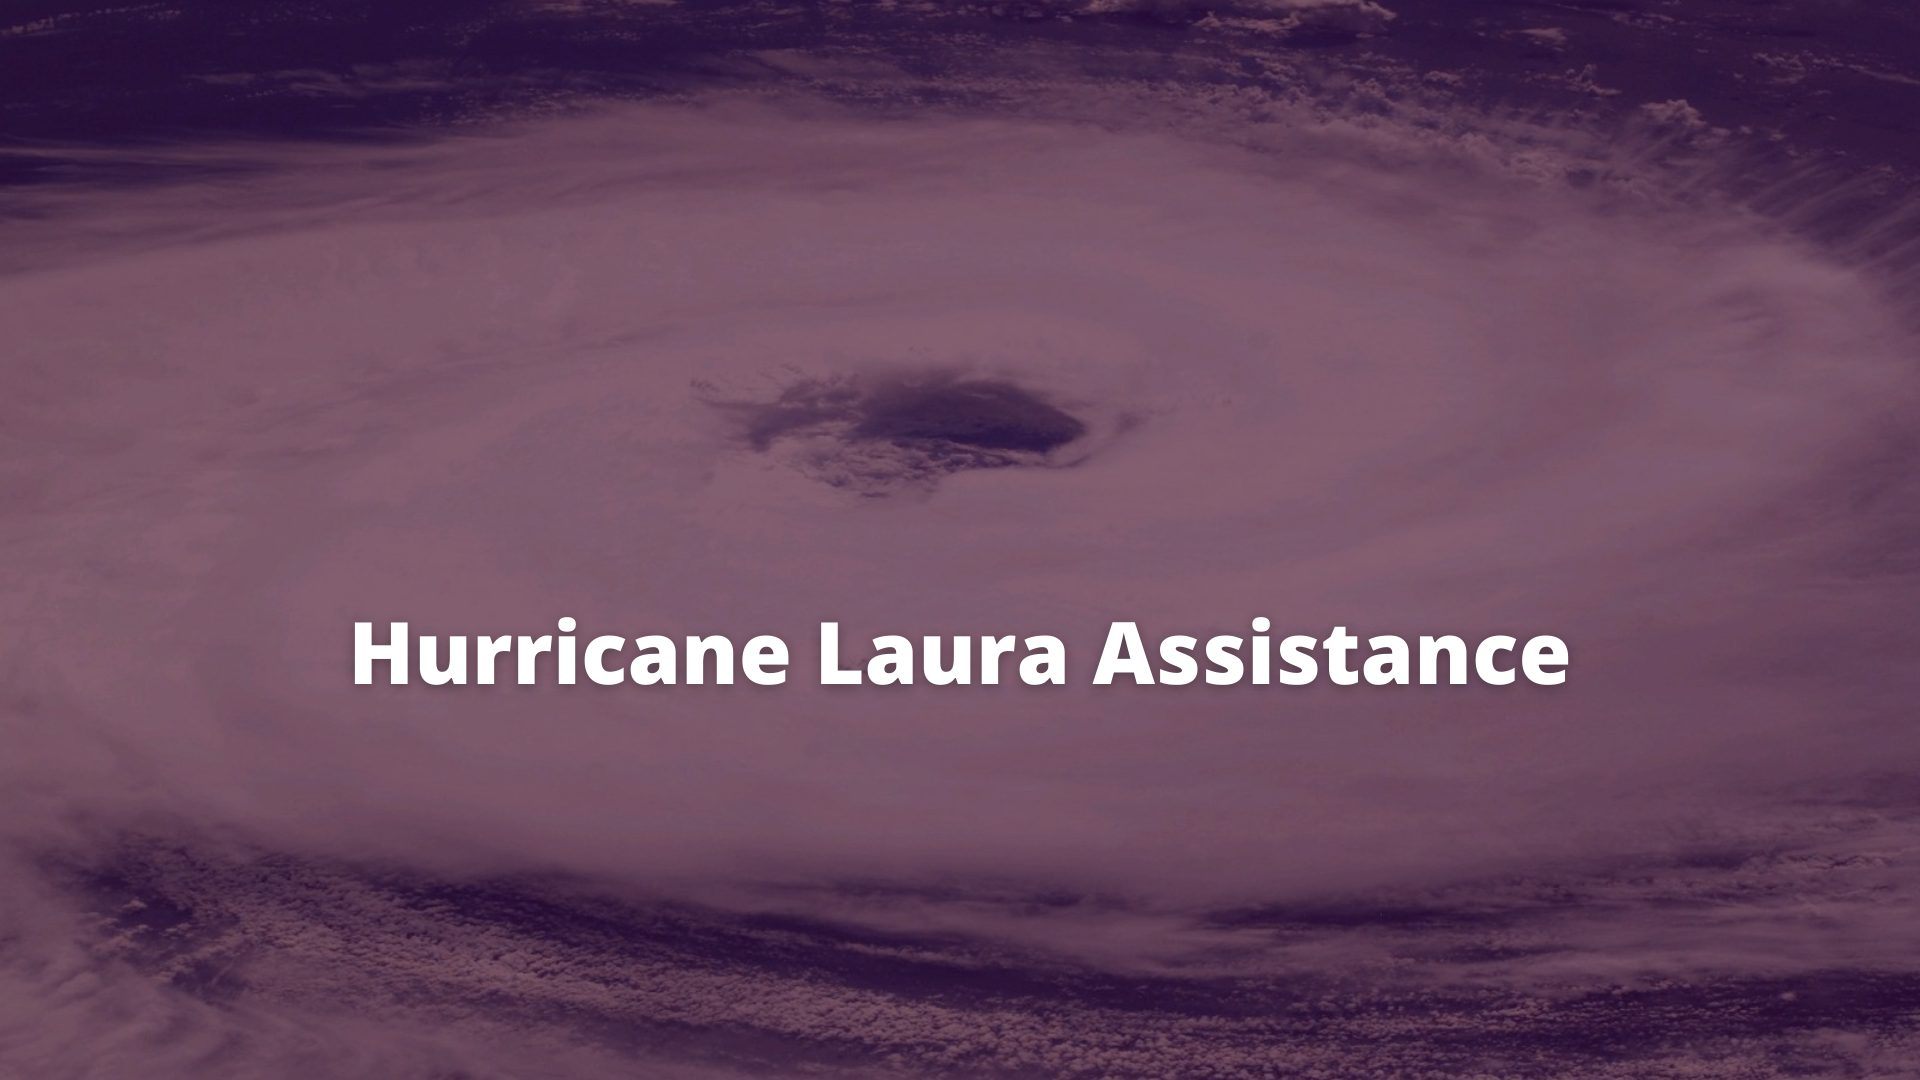 Hurricane Laura Assistance